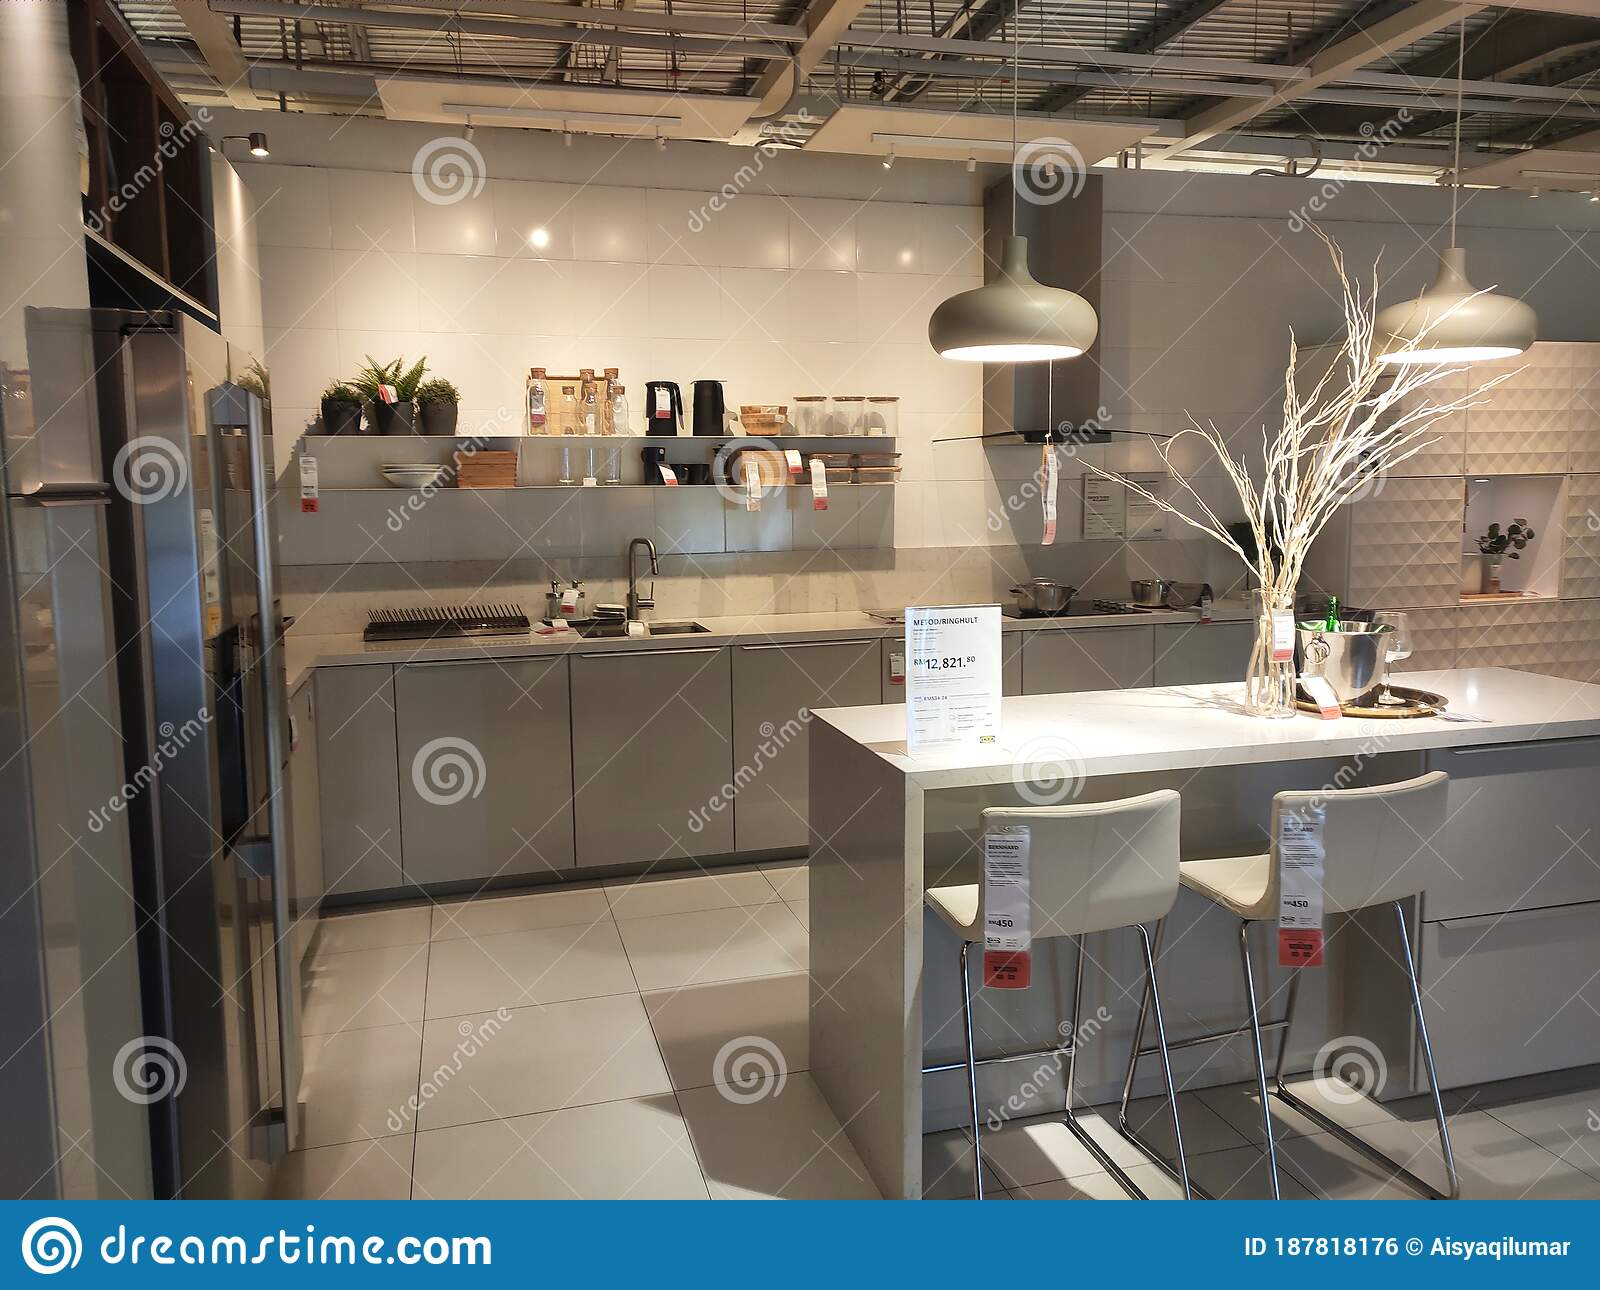 Kitchen Section Inside Ikea Malaysia Showroom Editorial Photo Image Of Decor Consumer 187818176